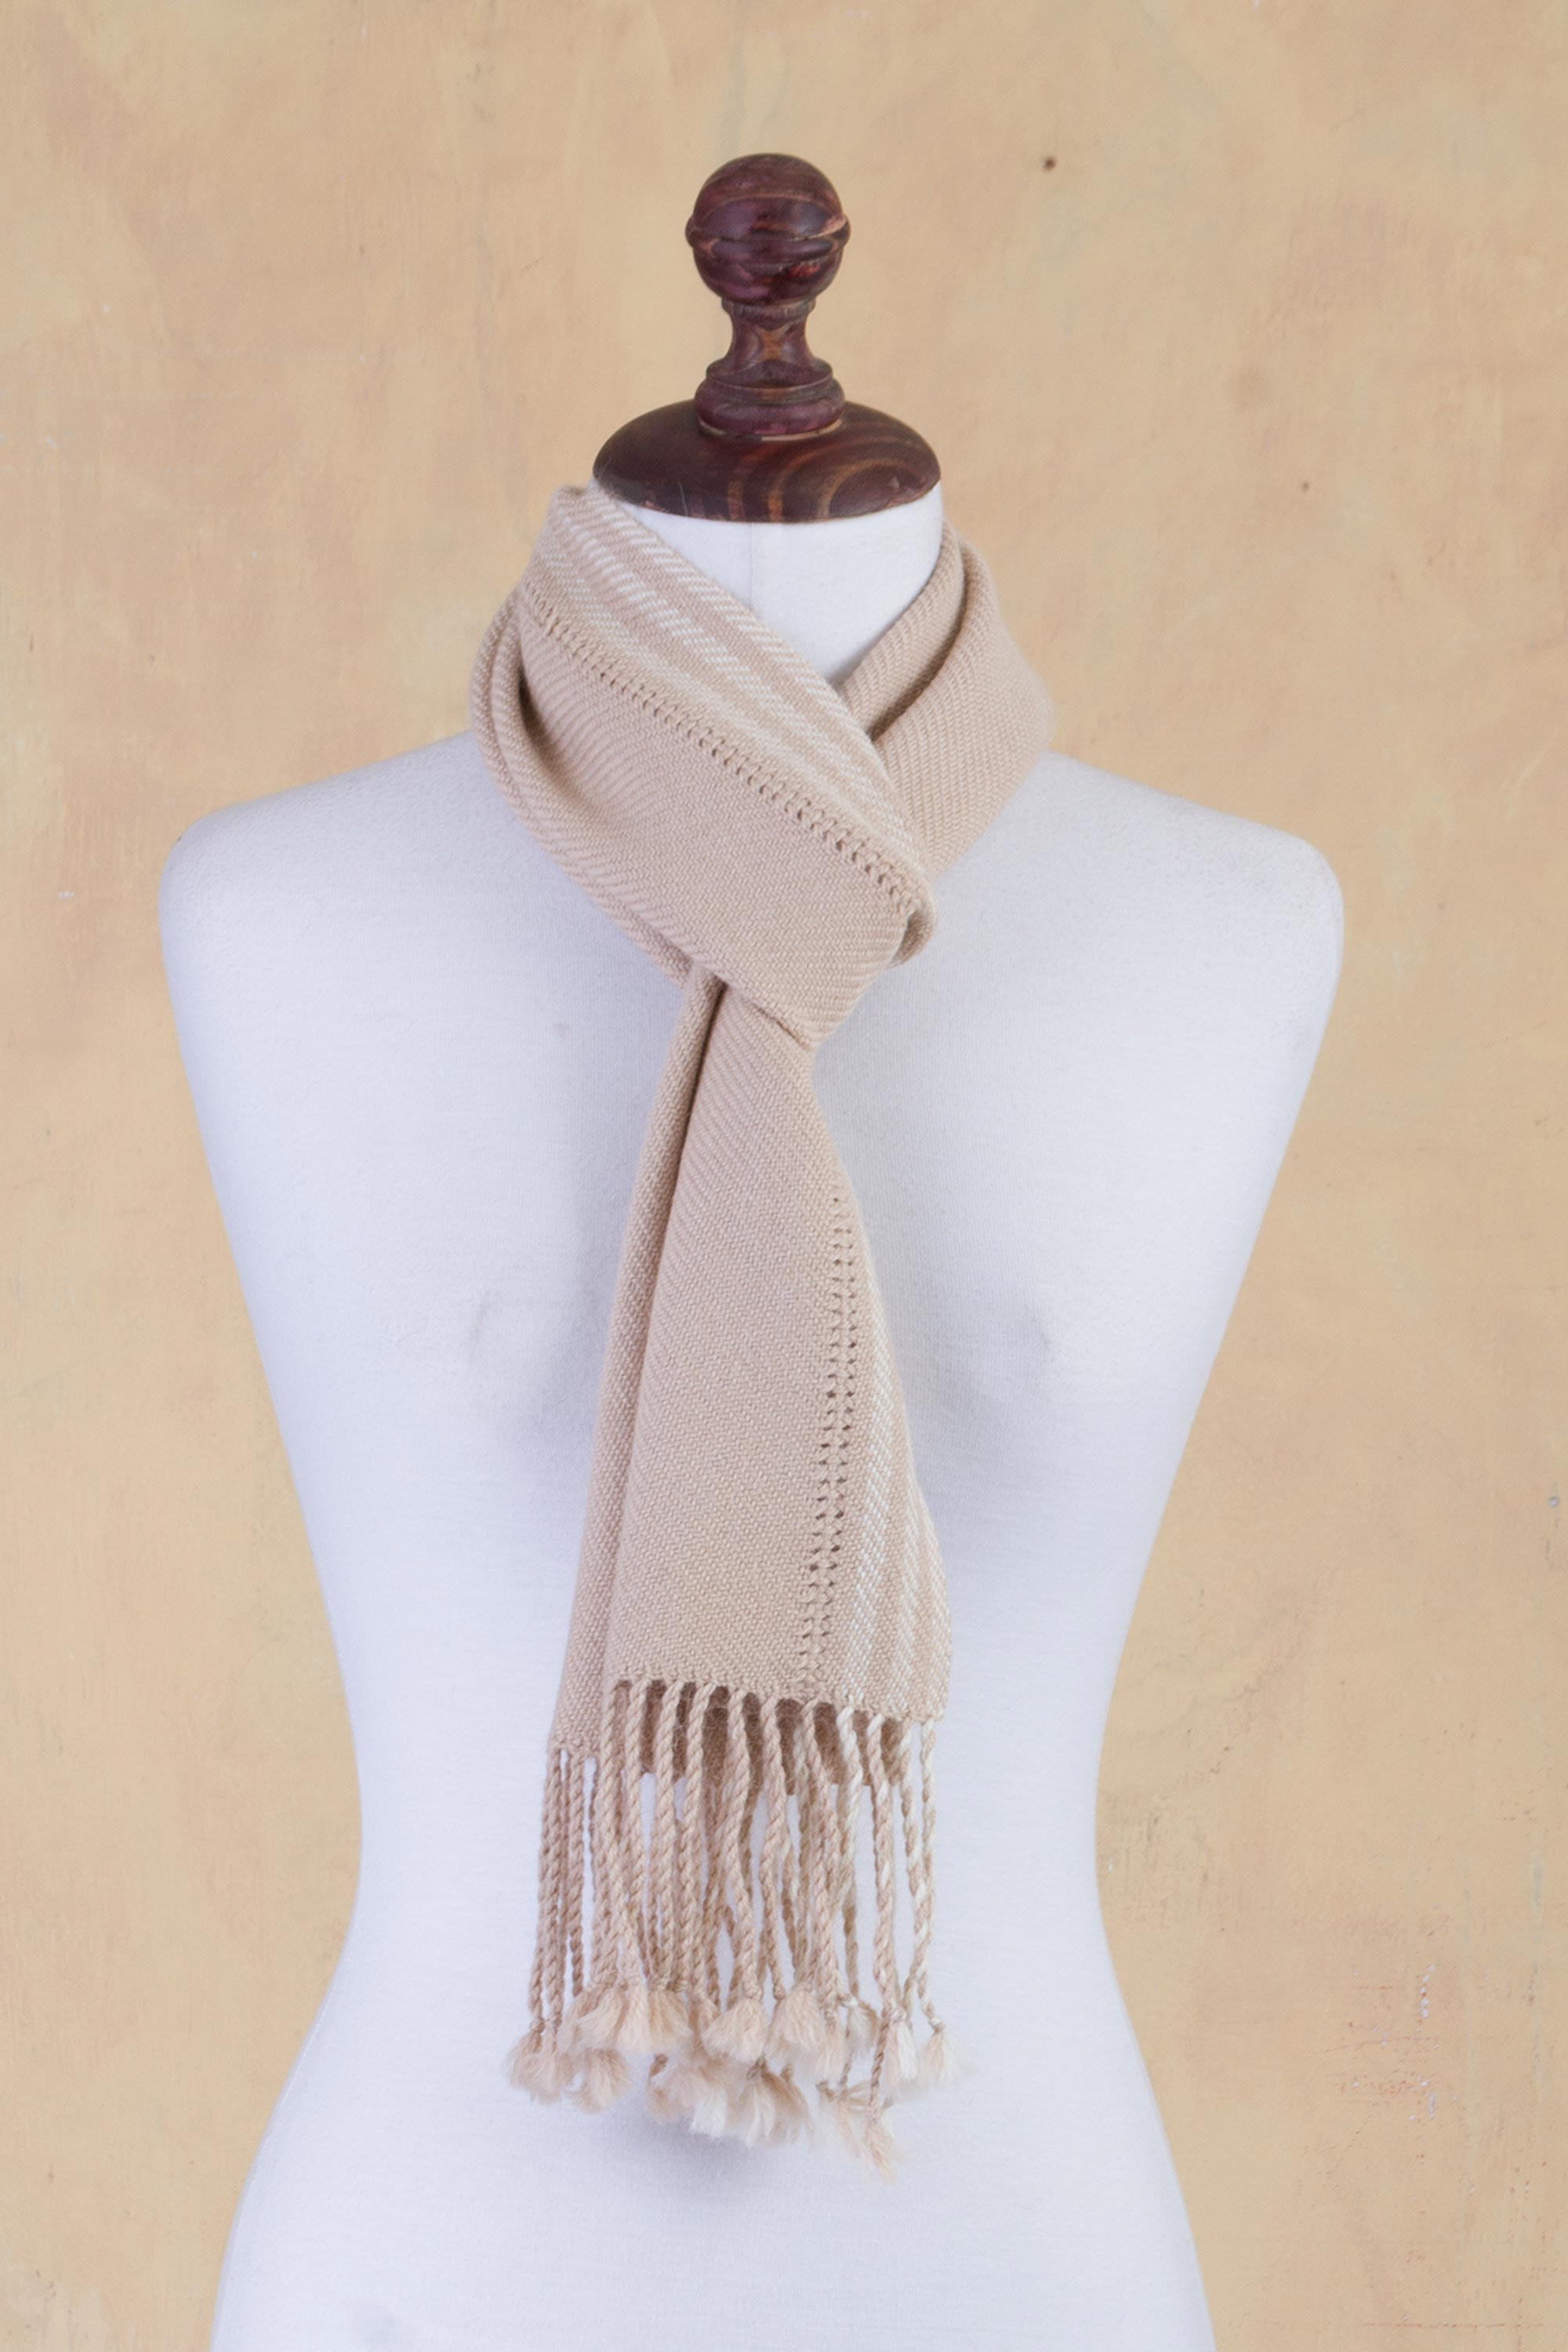 Tan Timeless in Beige 100% Alpaca Backstrap Loomed Scarf in Beige the Shawl and Scarf